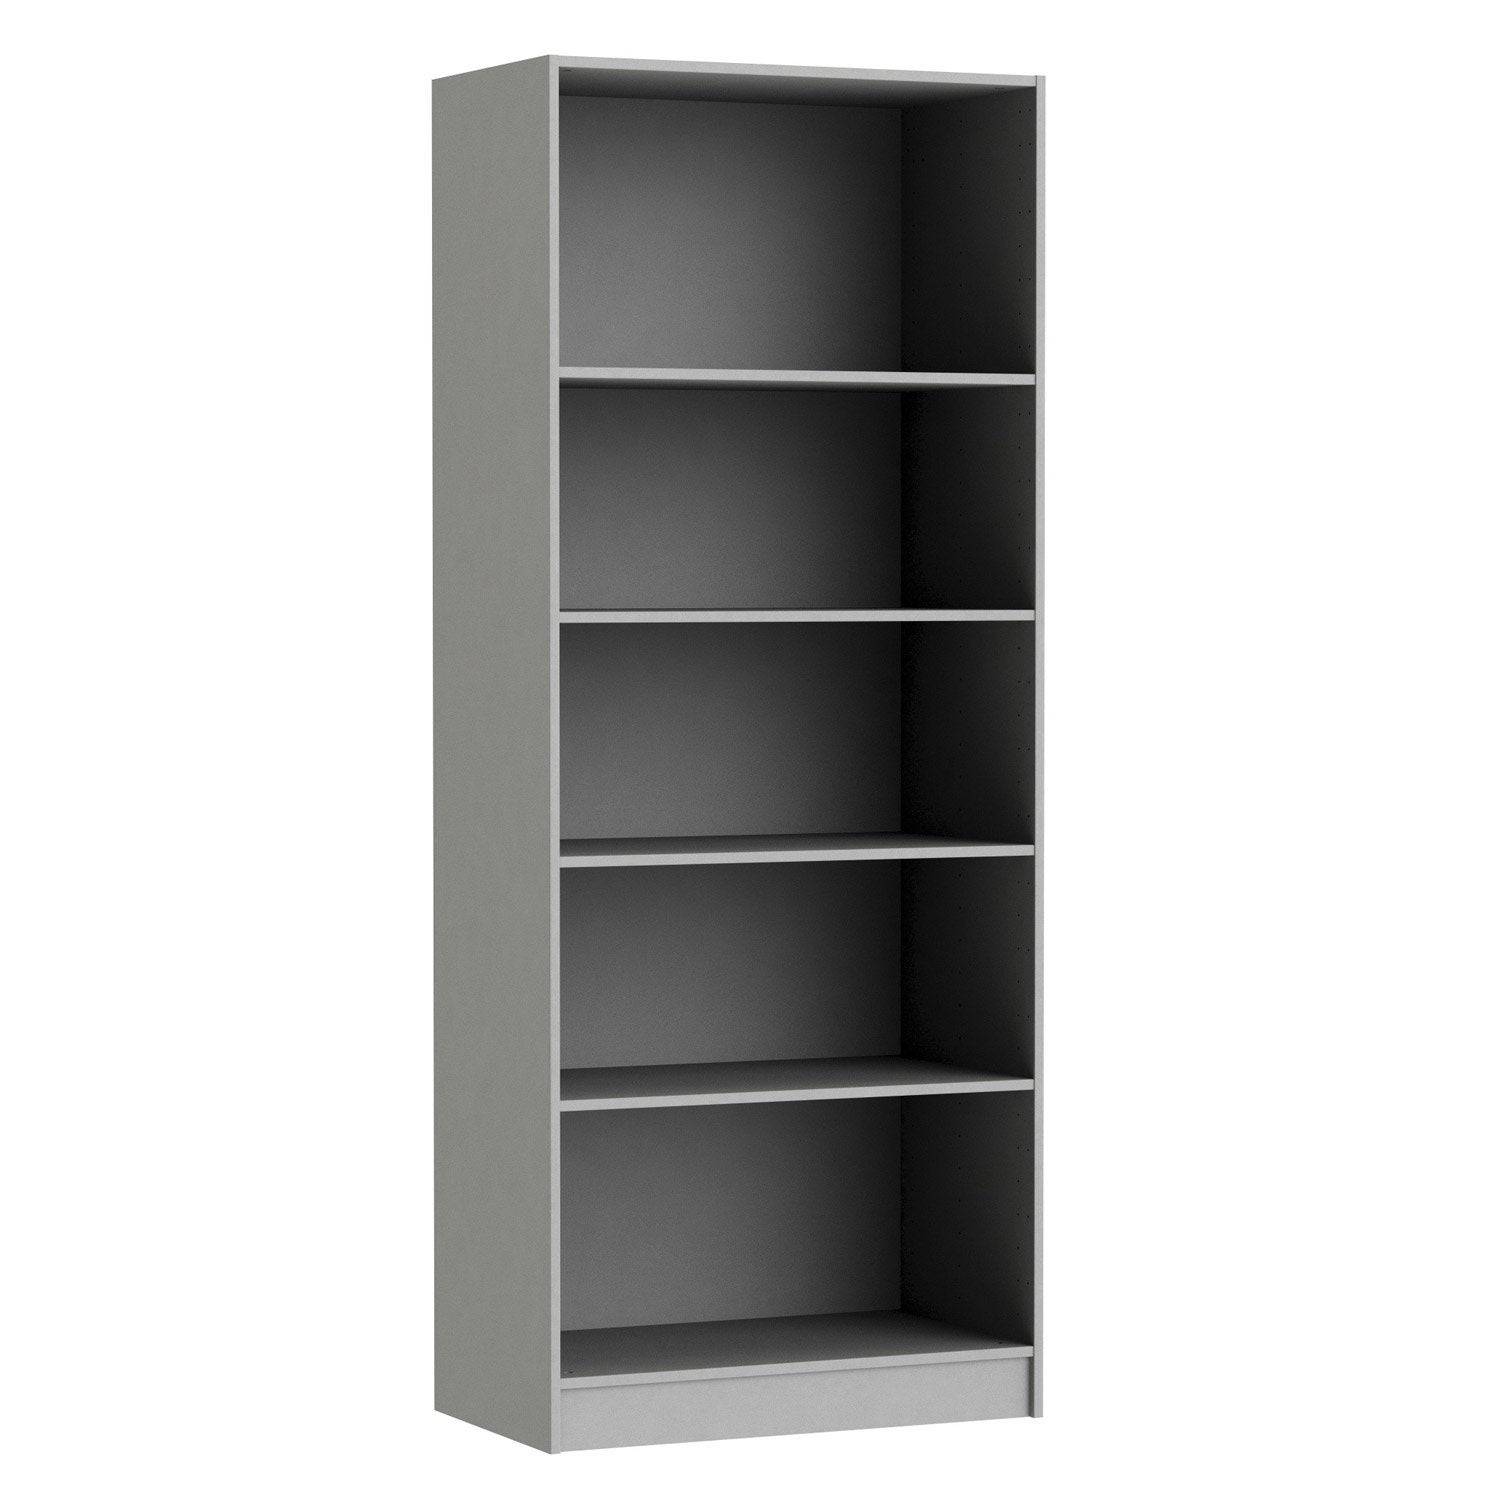 Caisson spaceo home 200 x 80 x 45 cm anthracite leroy - Etagere sur mesure leroy merlin ...